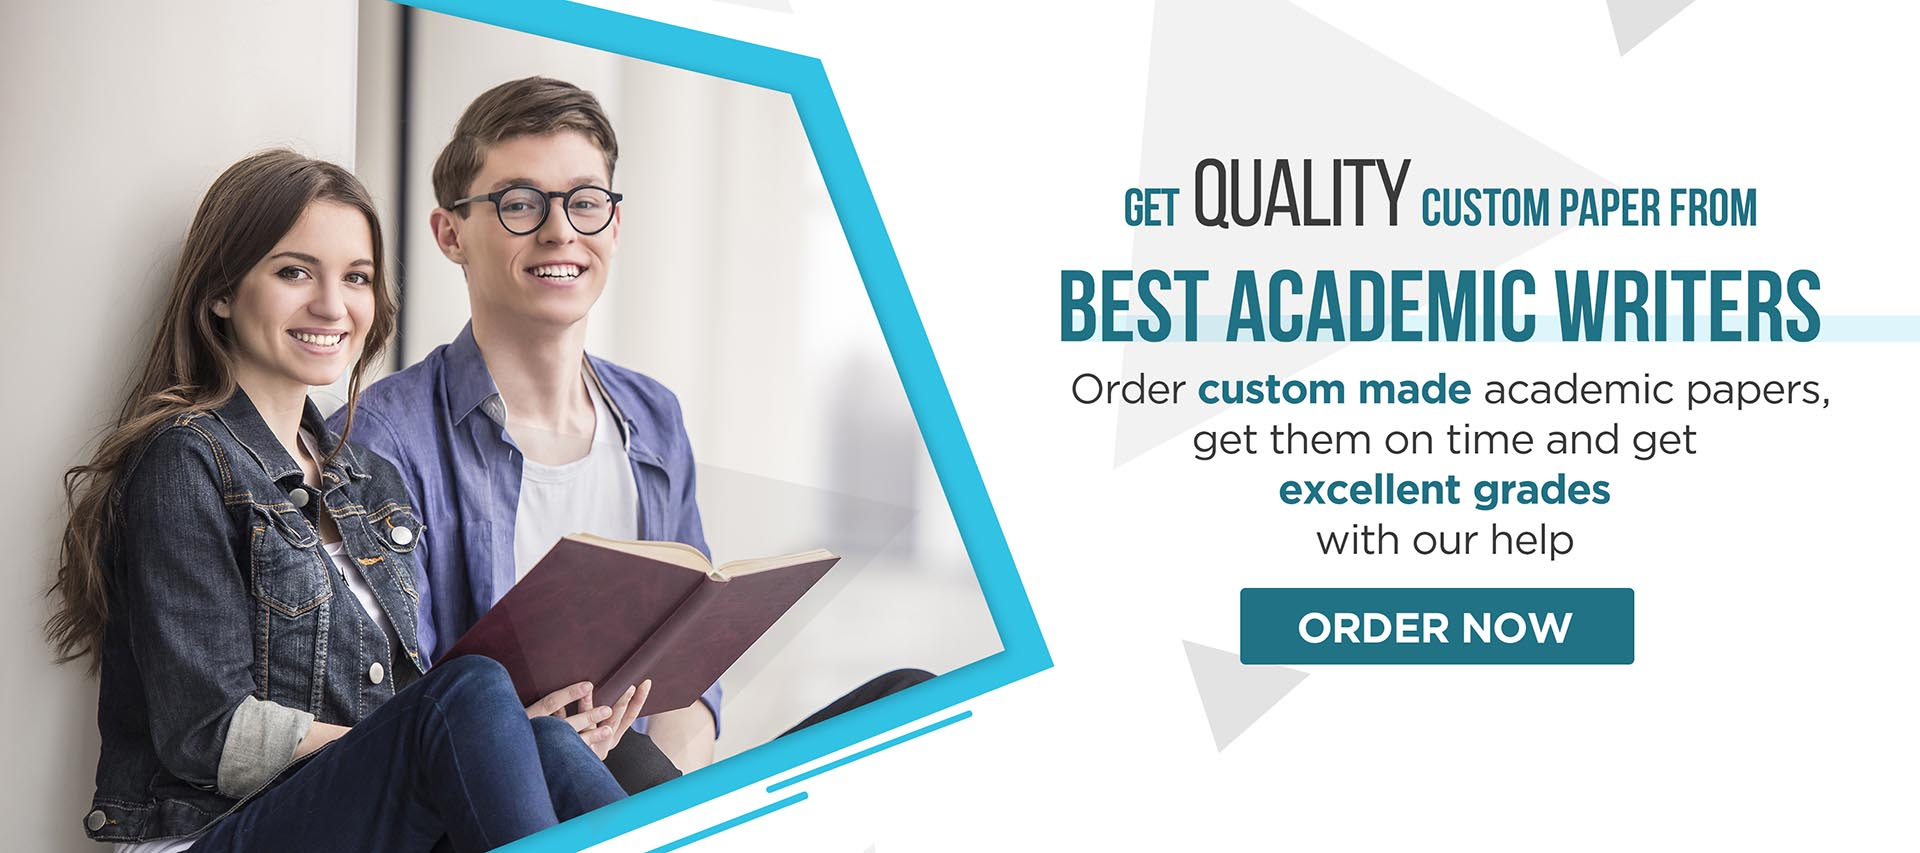 Best quality custom paper from Best Academic writers.